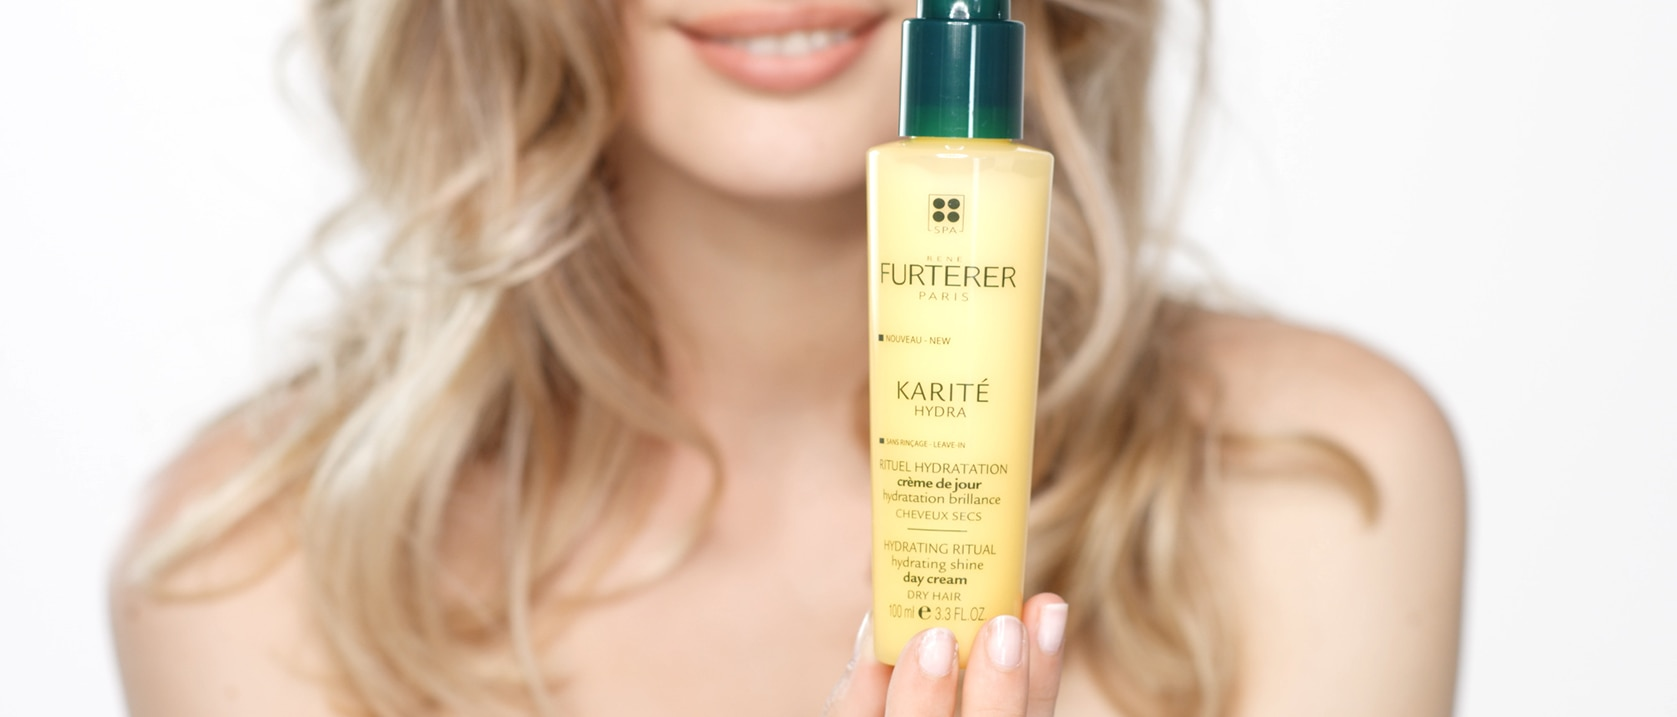 KARITE HYDRA crème de jour Hydratation brillance video application | René Furterer